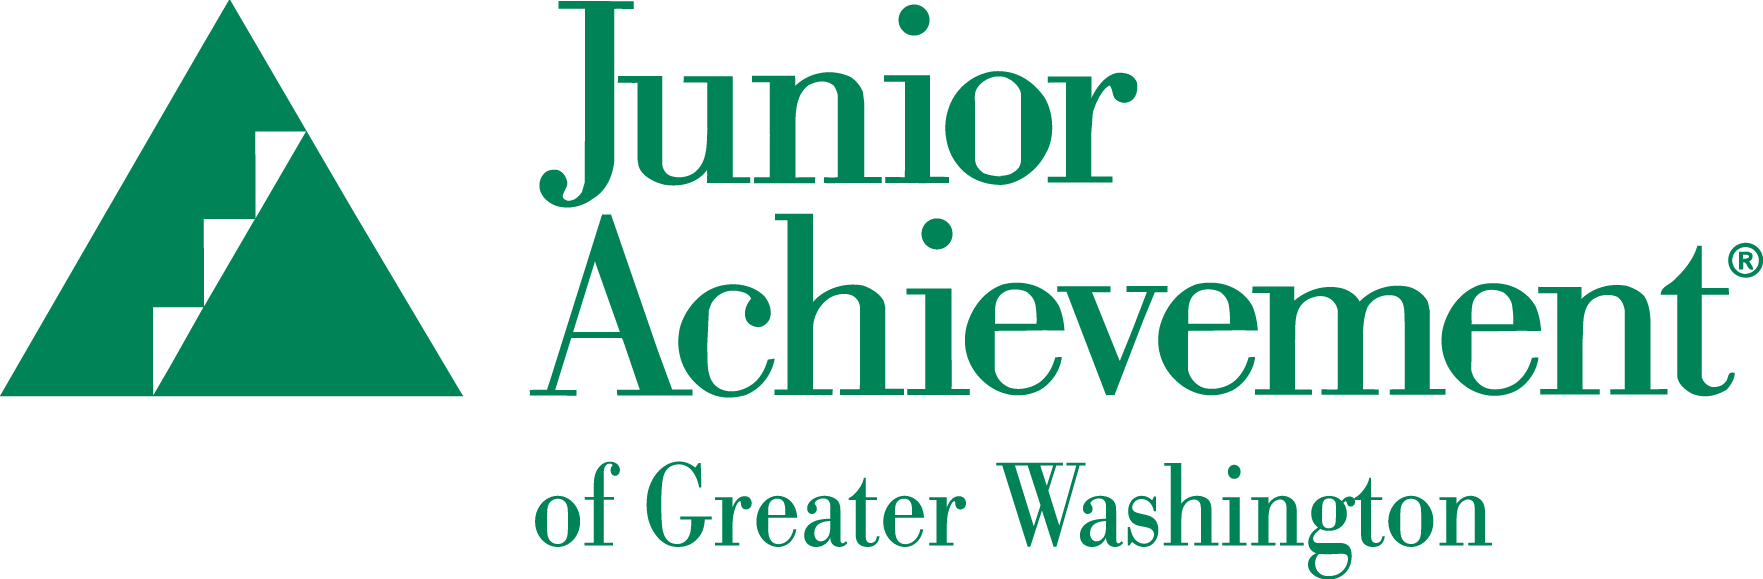 JA of Greater Washington Green.png